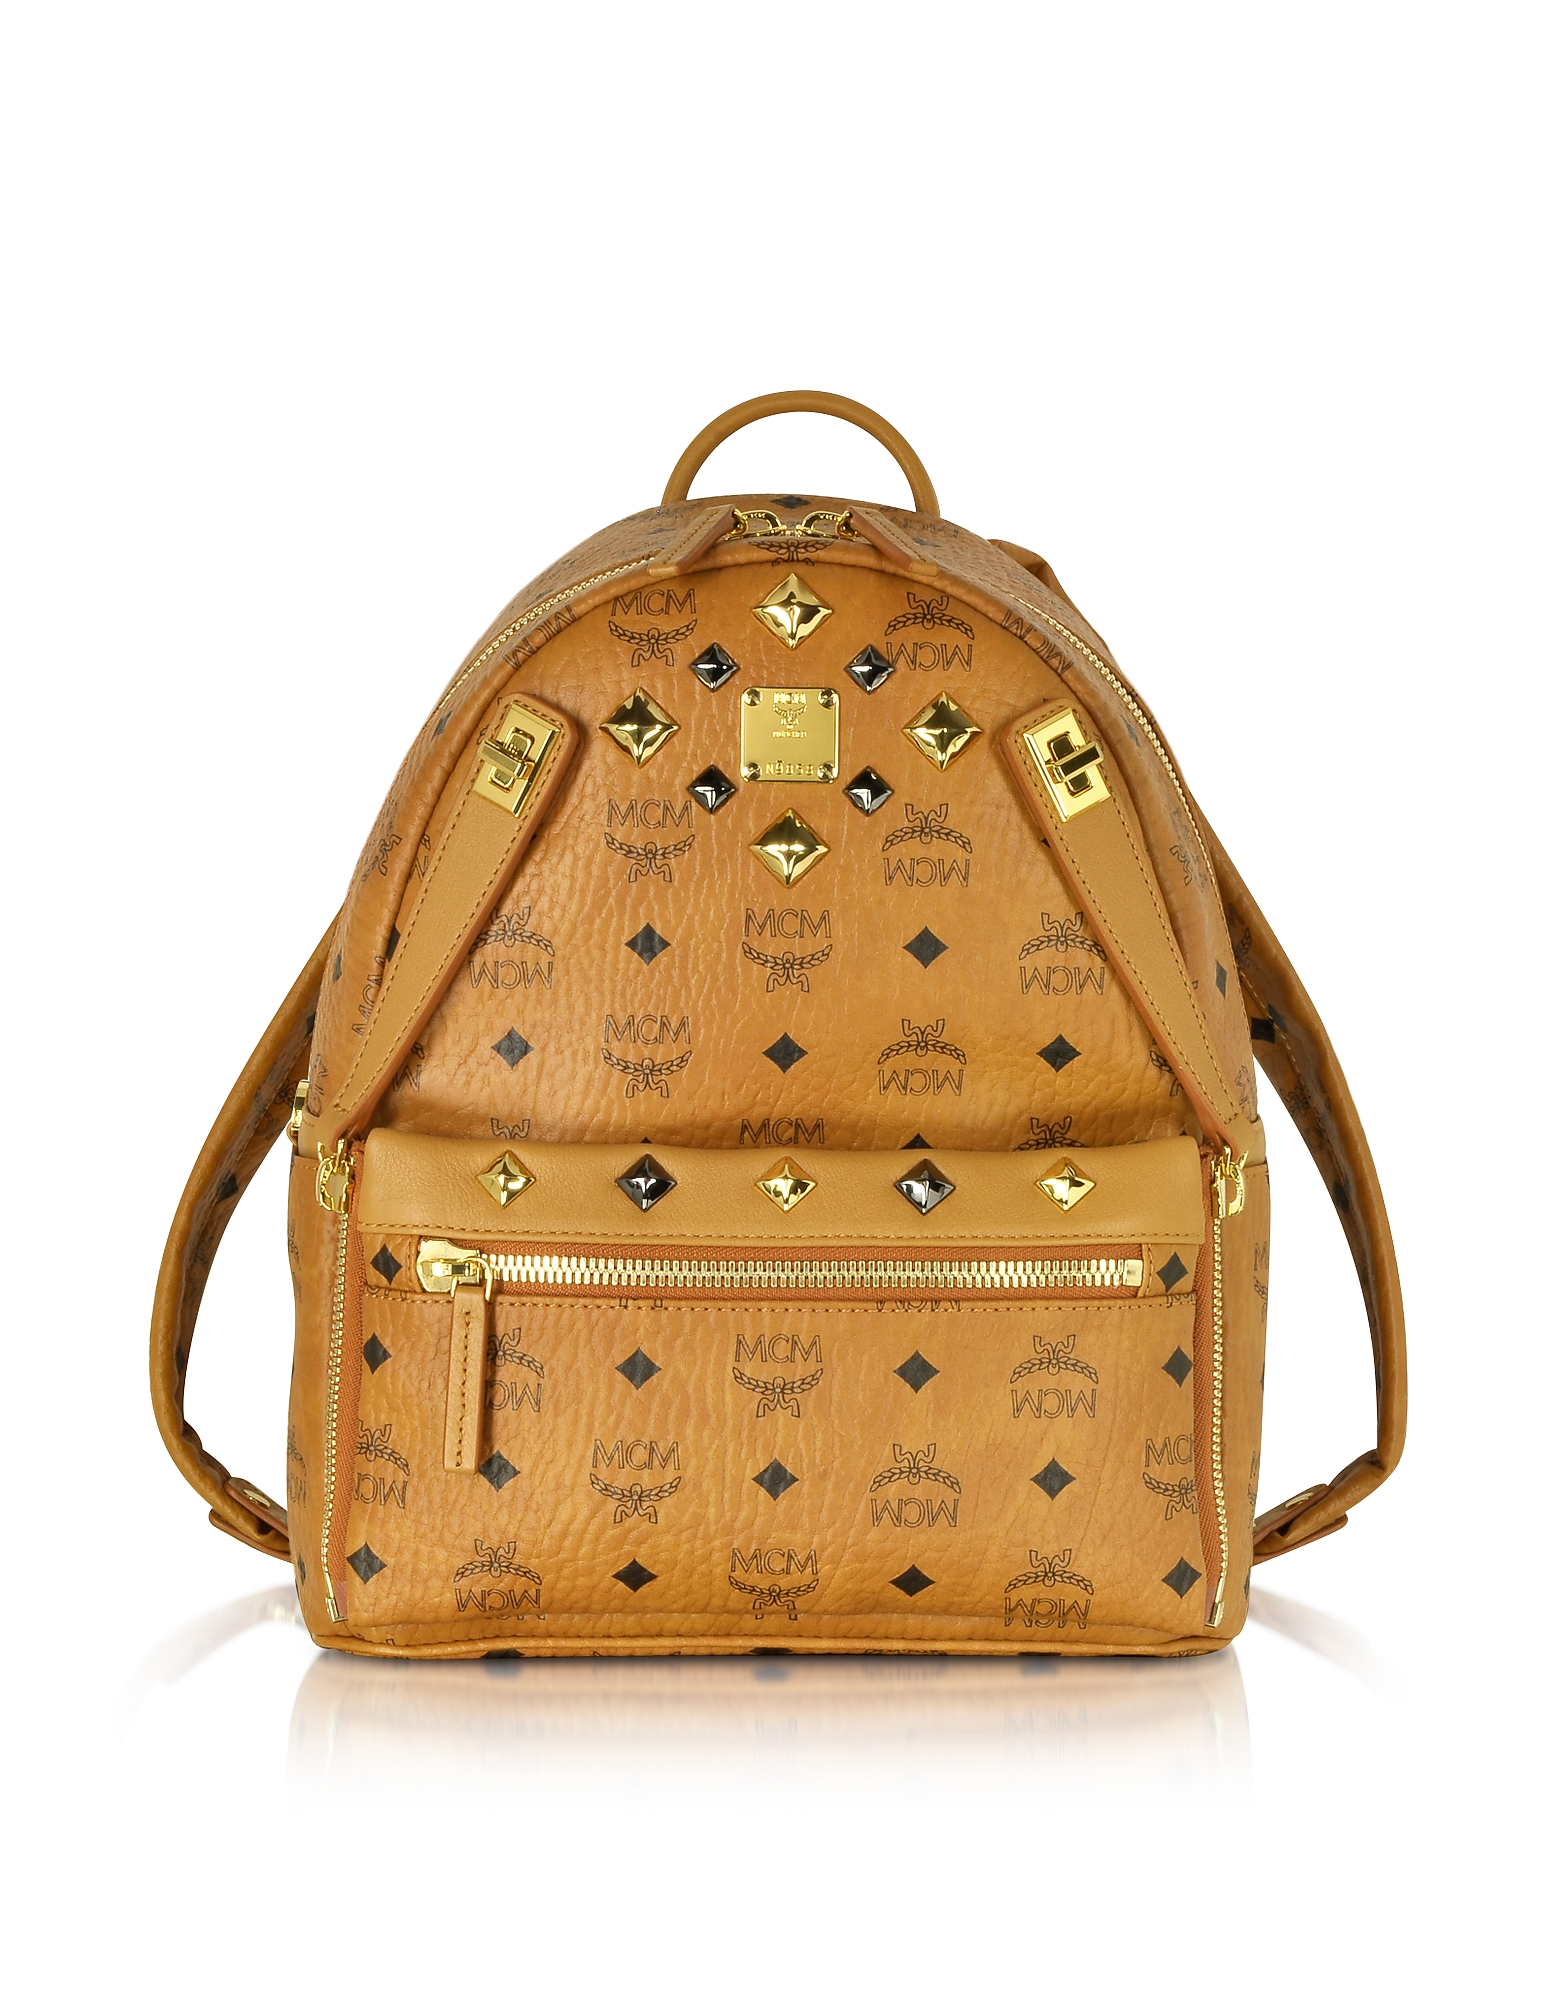 MCM Handbags, Cognac Small Dual Stark Backpack